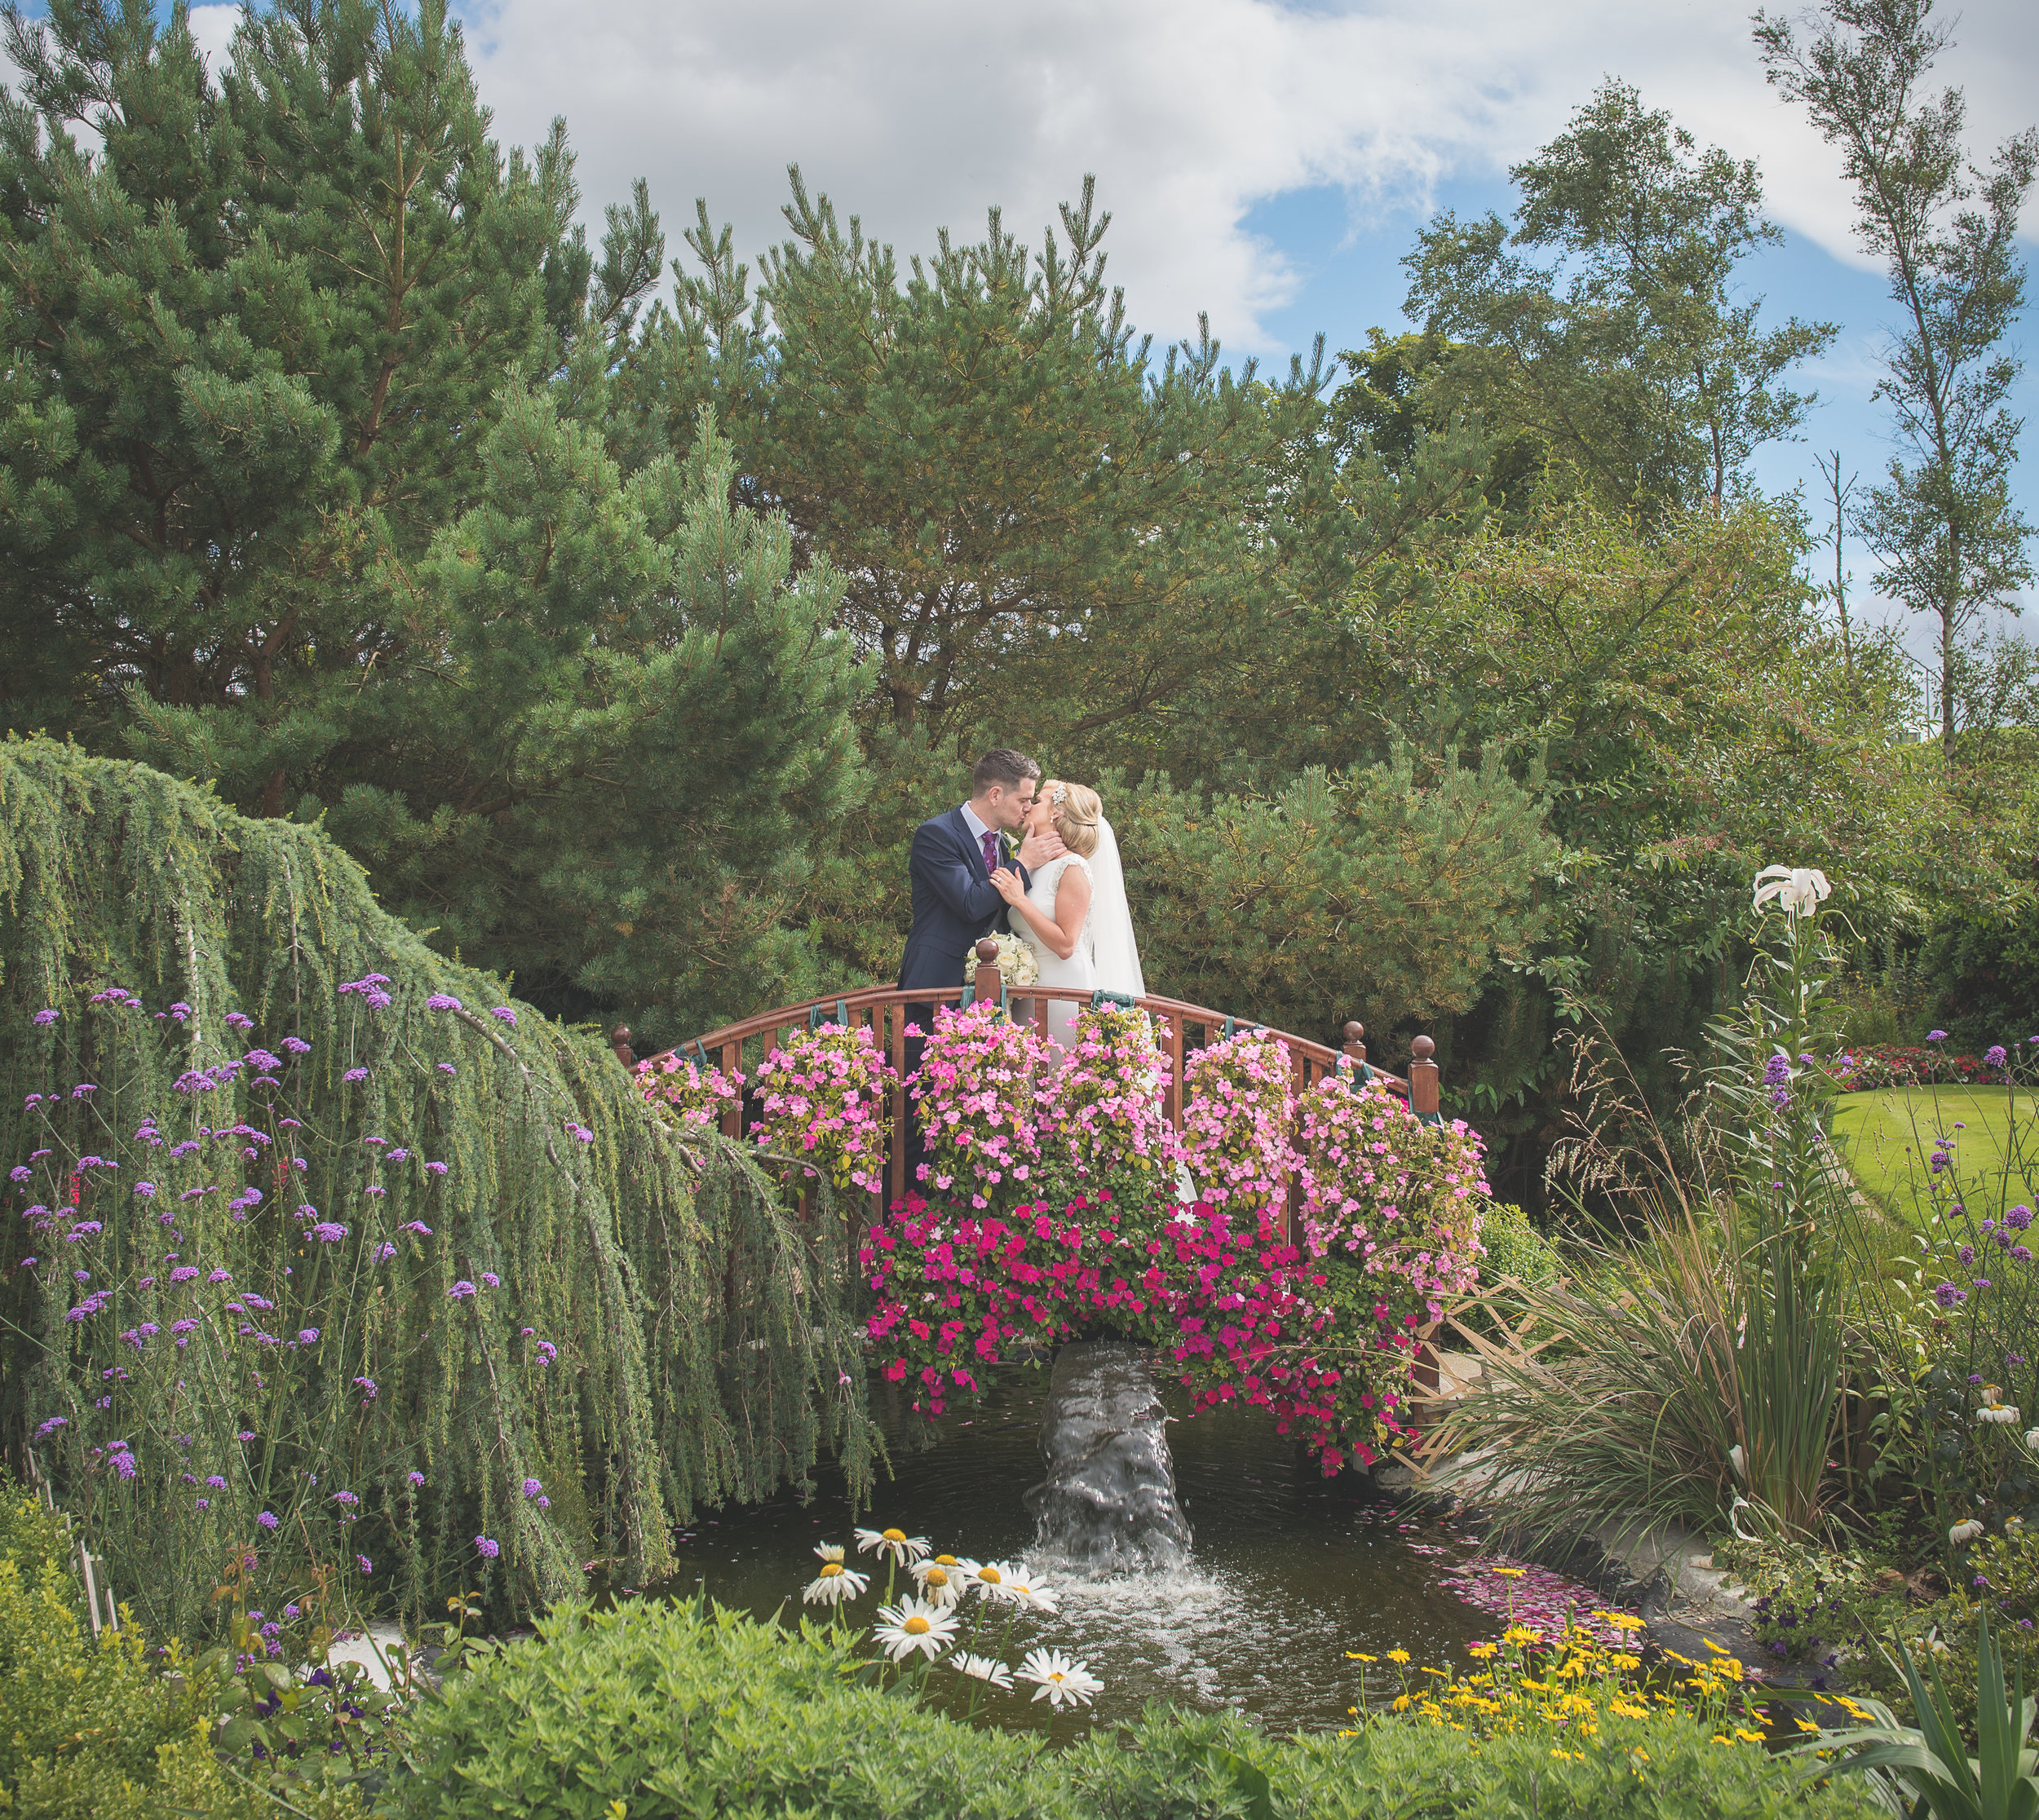 Natural, creative and timeless wedding portraiture captured by award winning photographer -